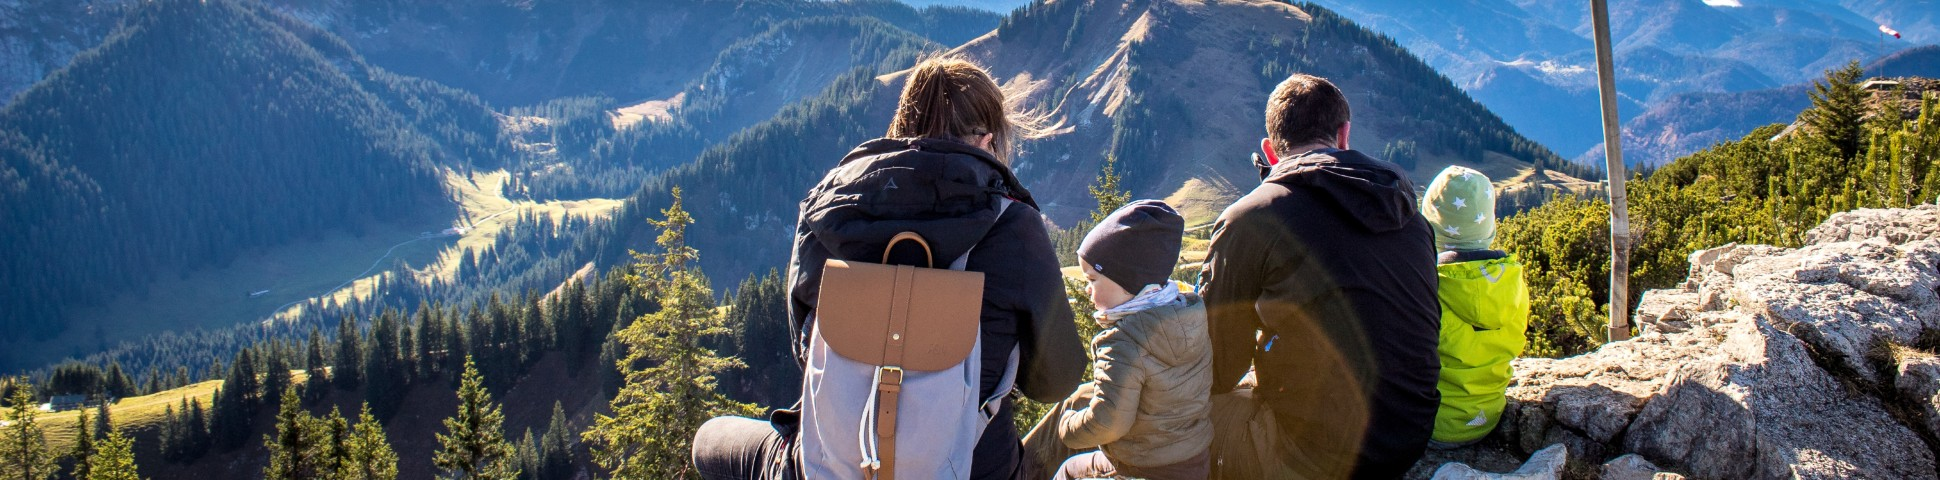 Parents with two children hiking in the mountains